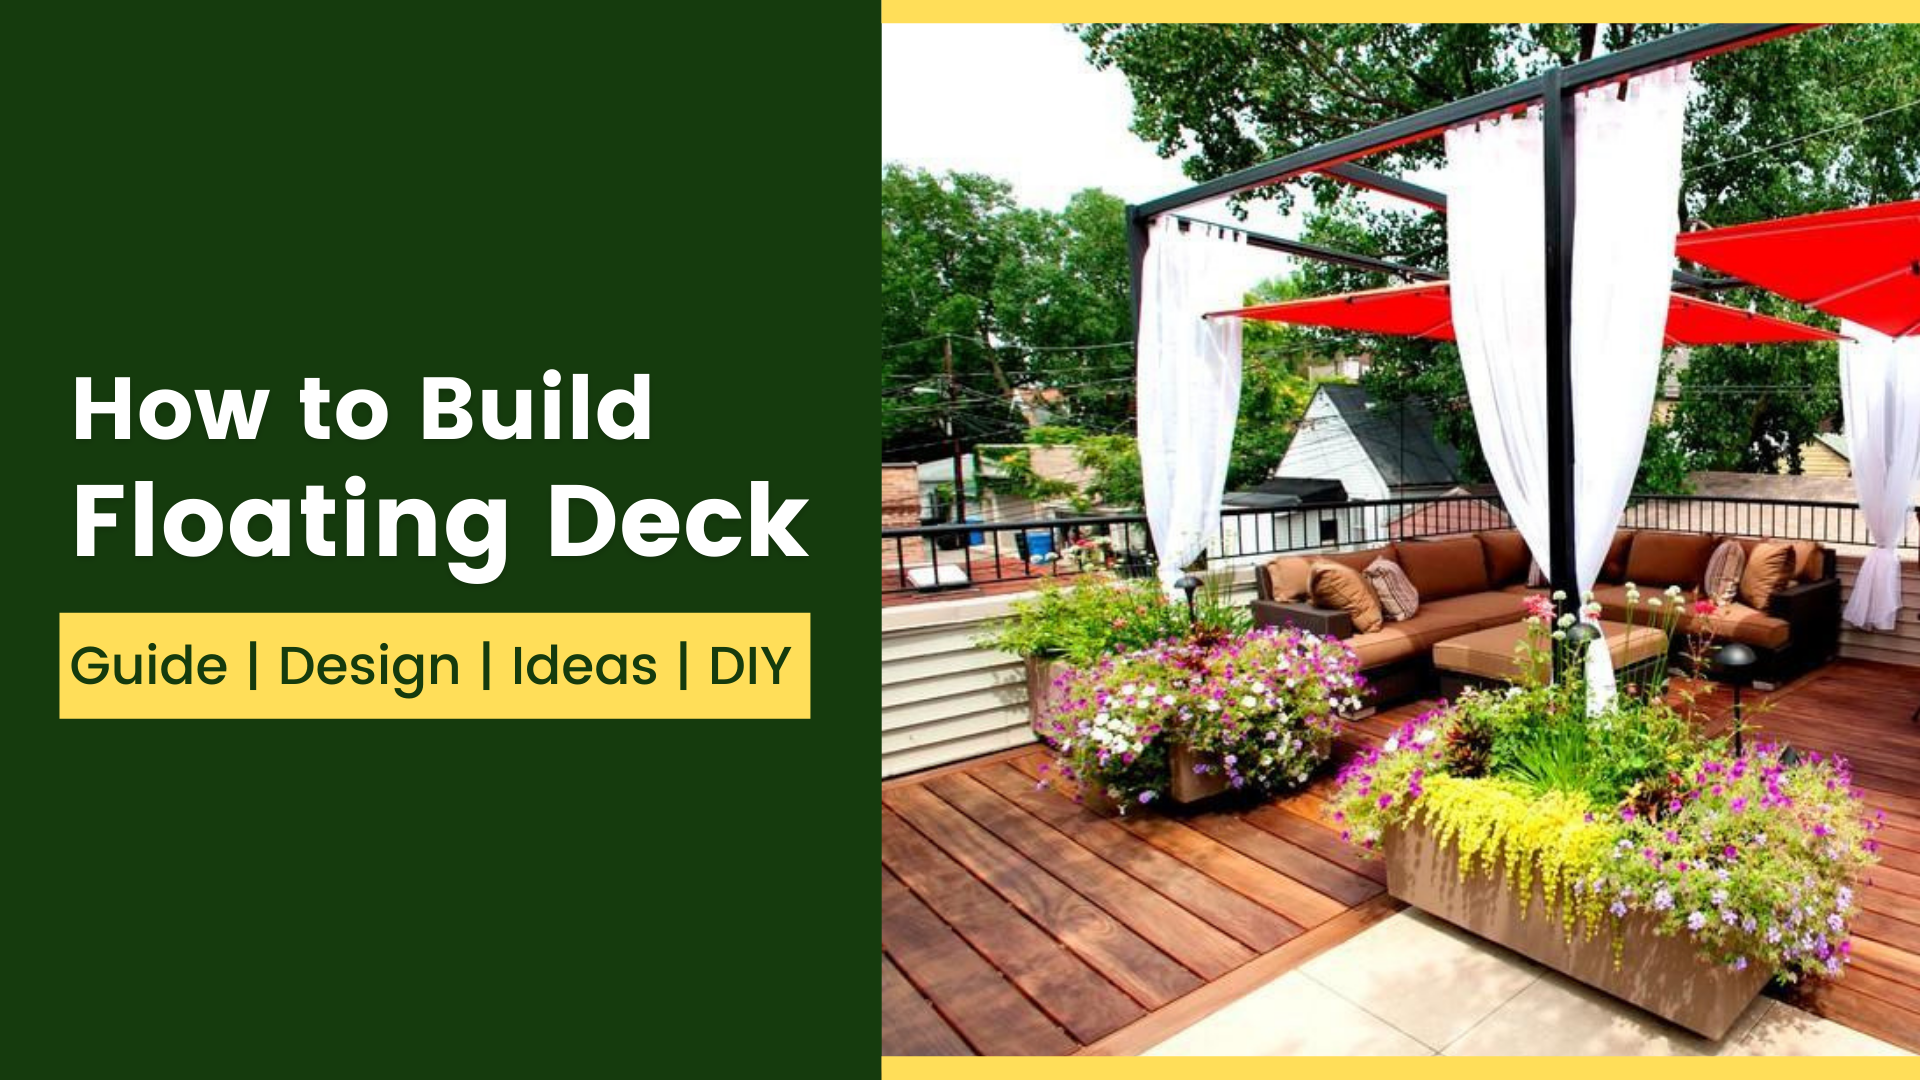 How to Build Floating Deck